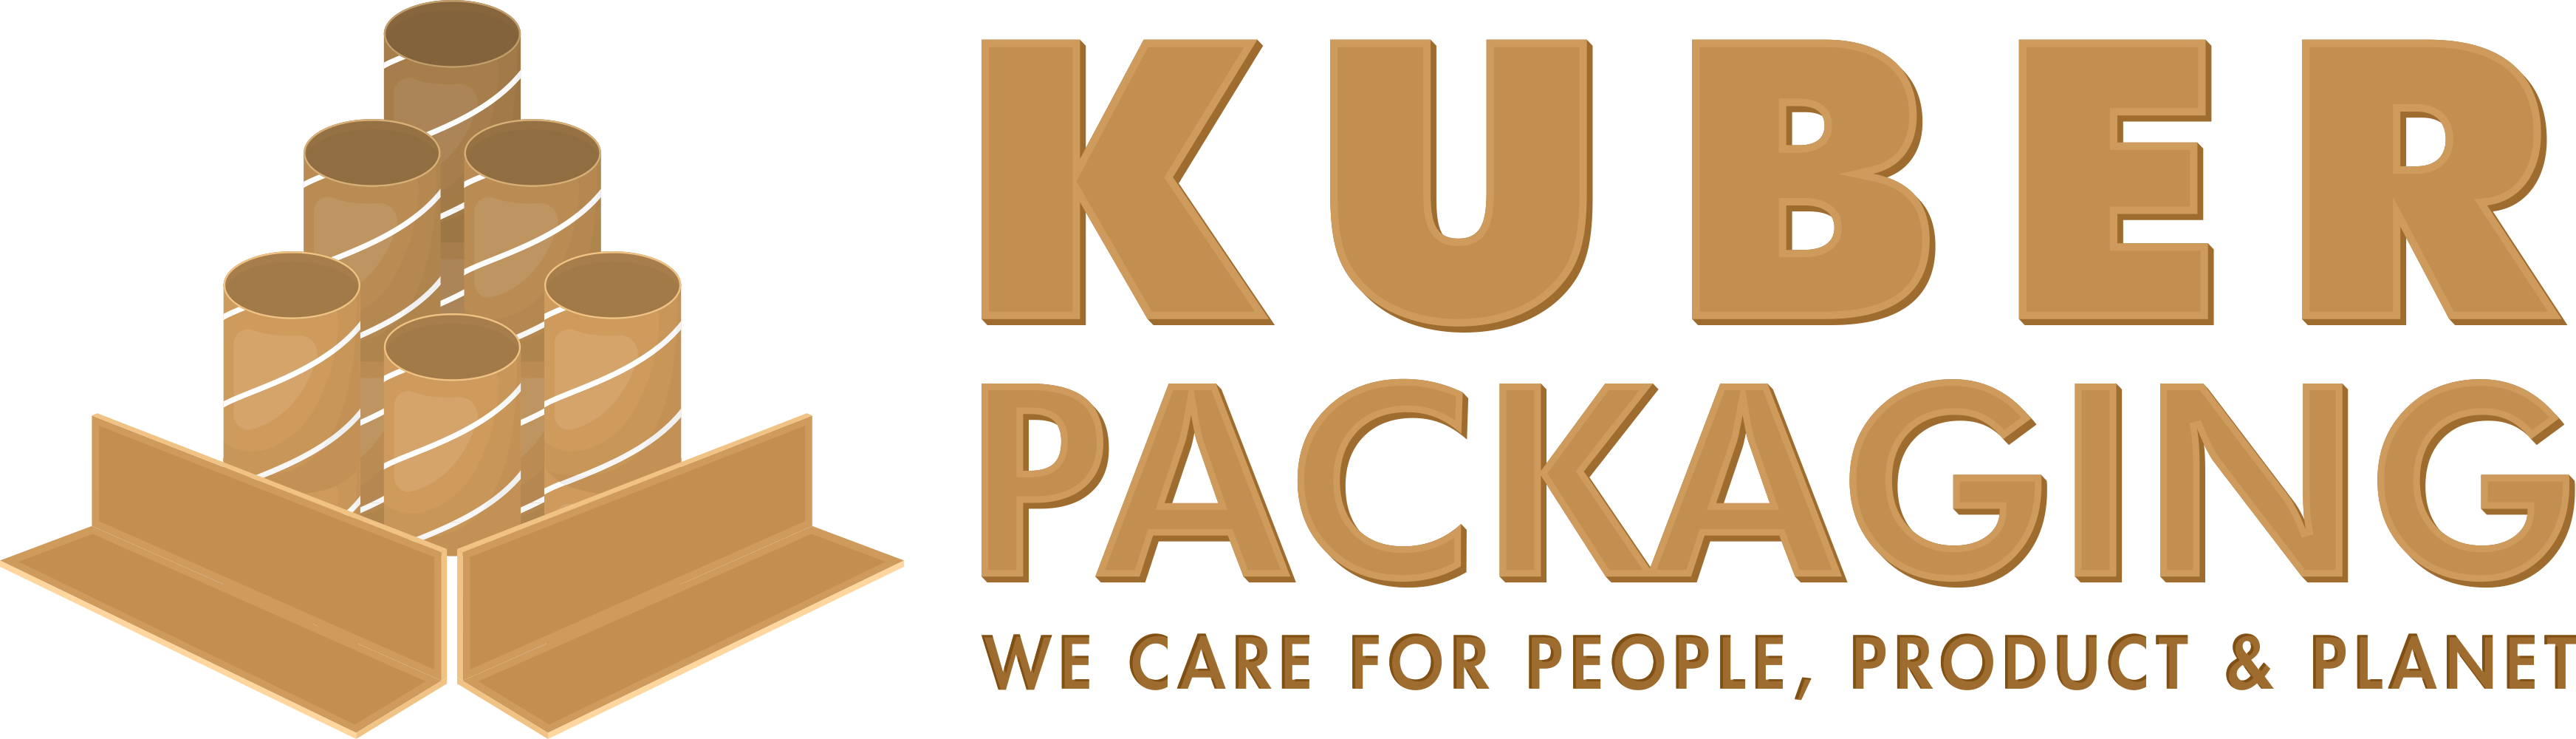 Kuber Packaging